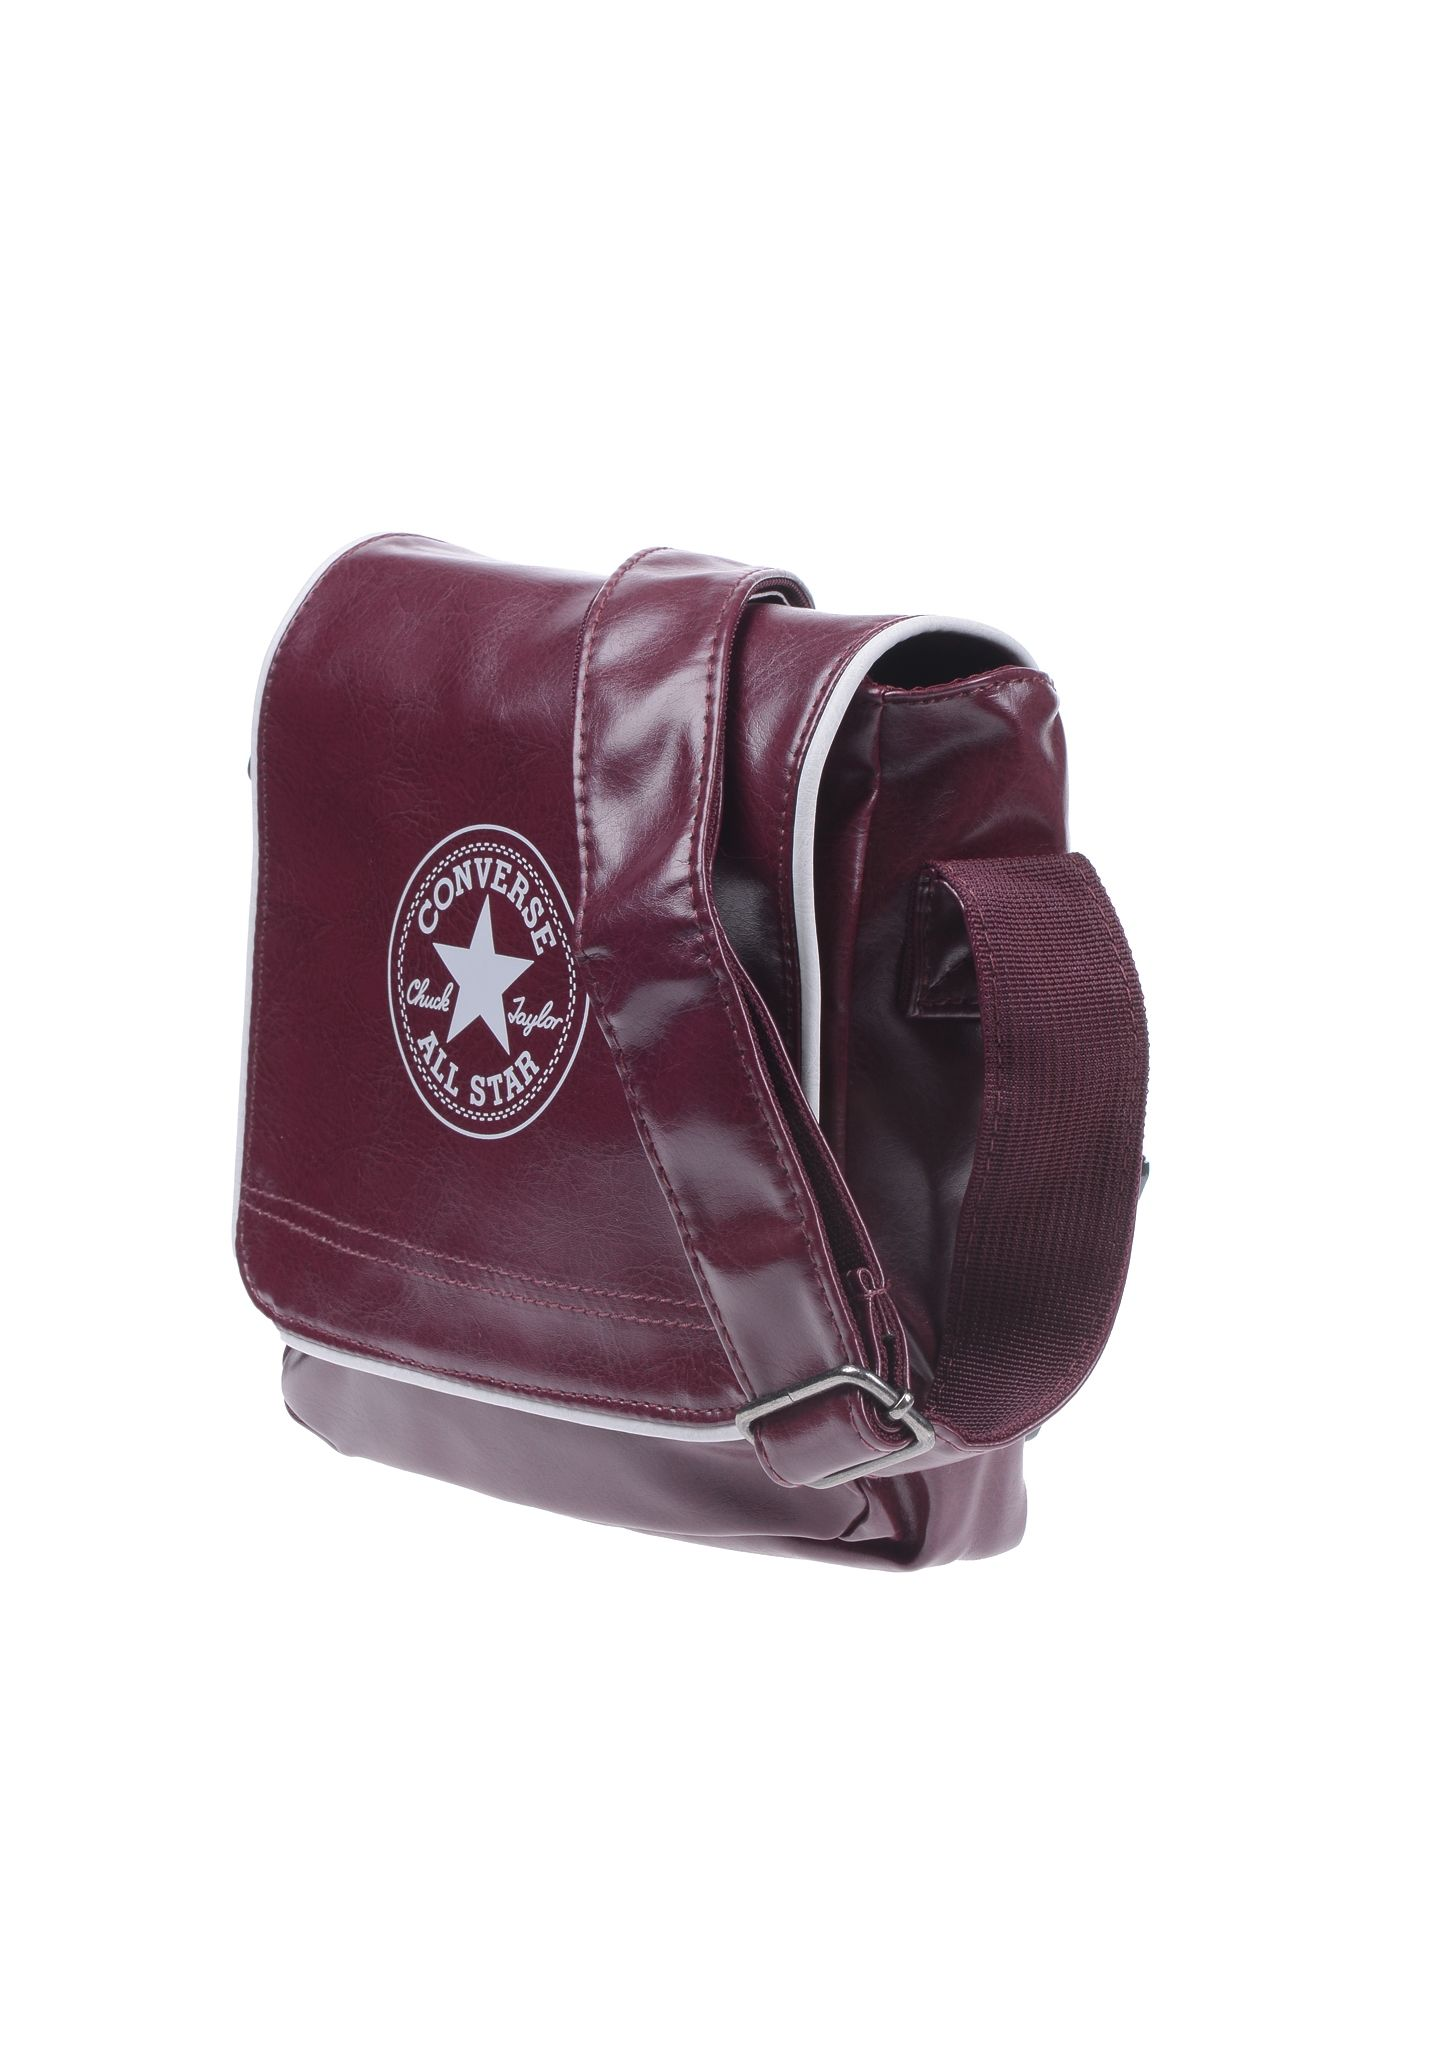 bc57fbe08c6 Converse Small Flap Retro - Messenger Bag - Red - Planet Sports